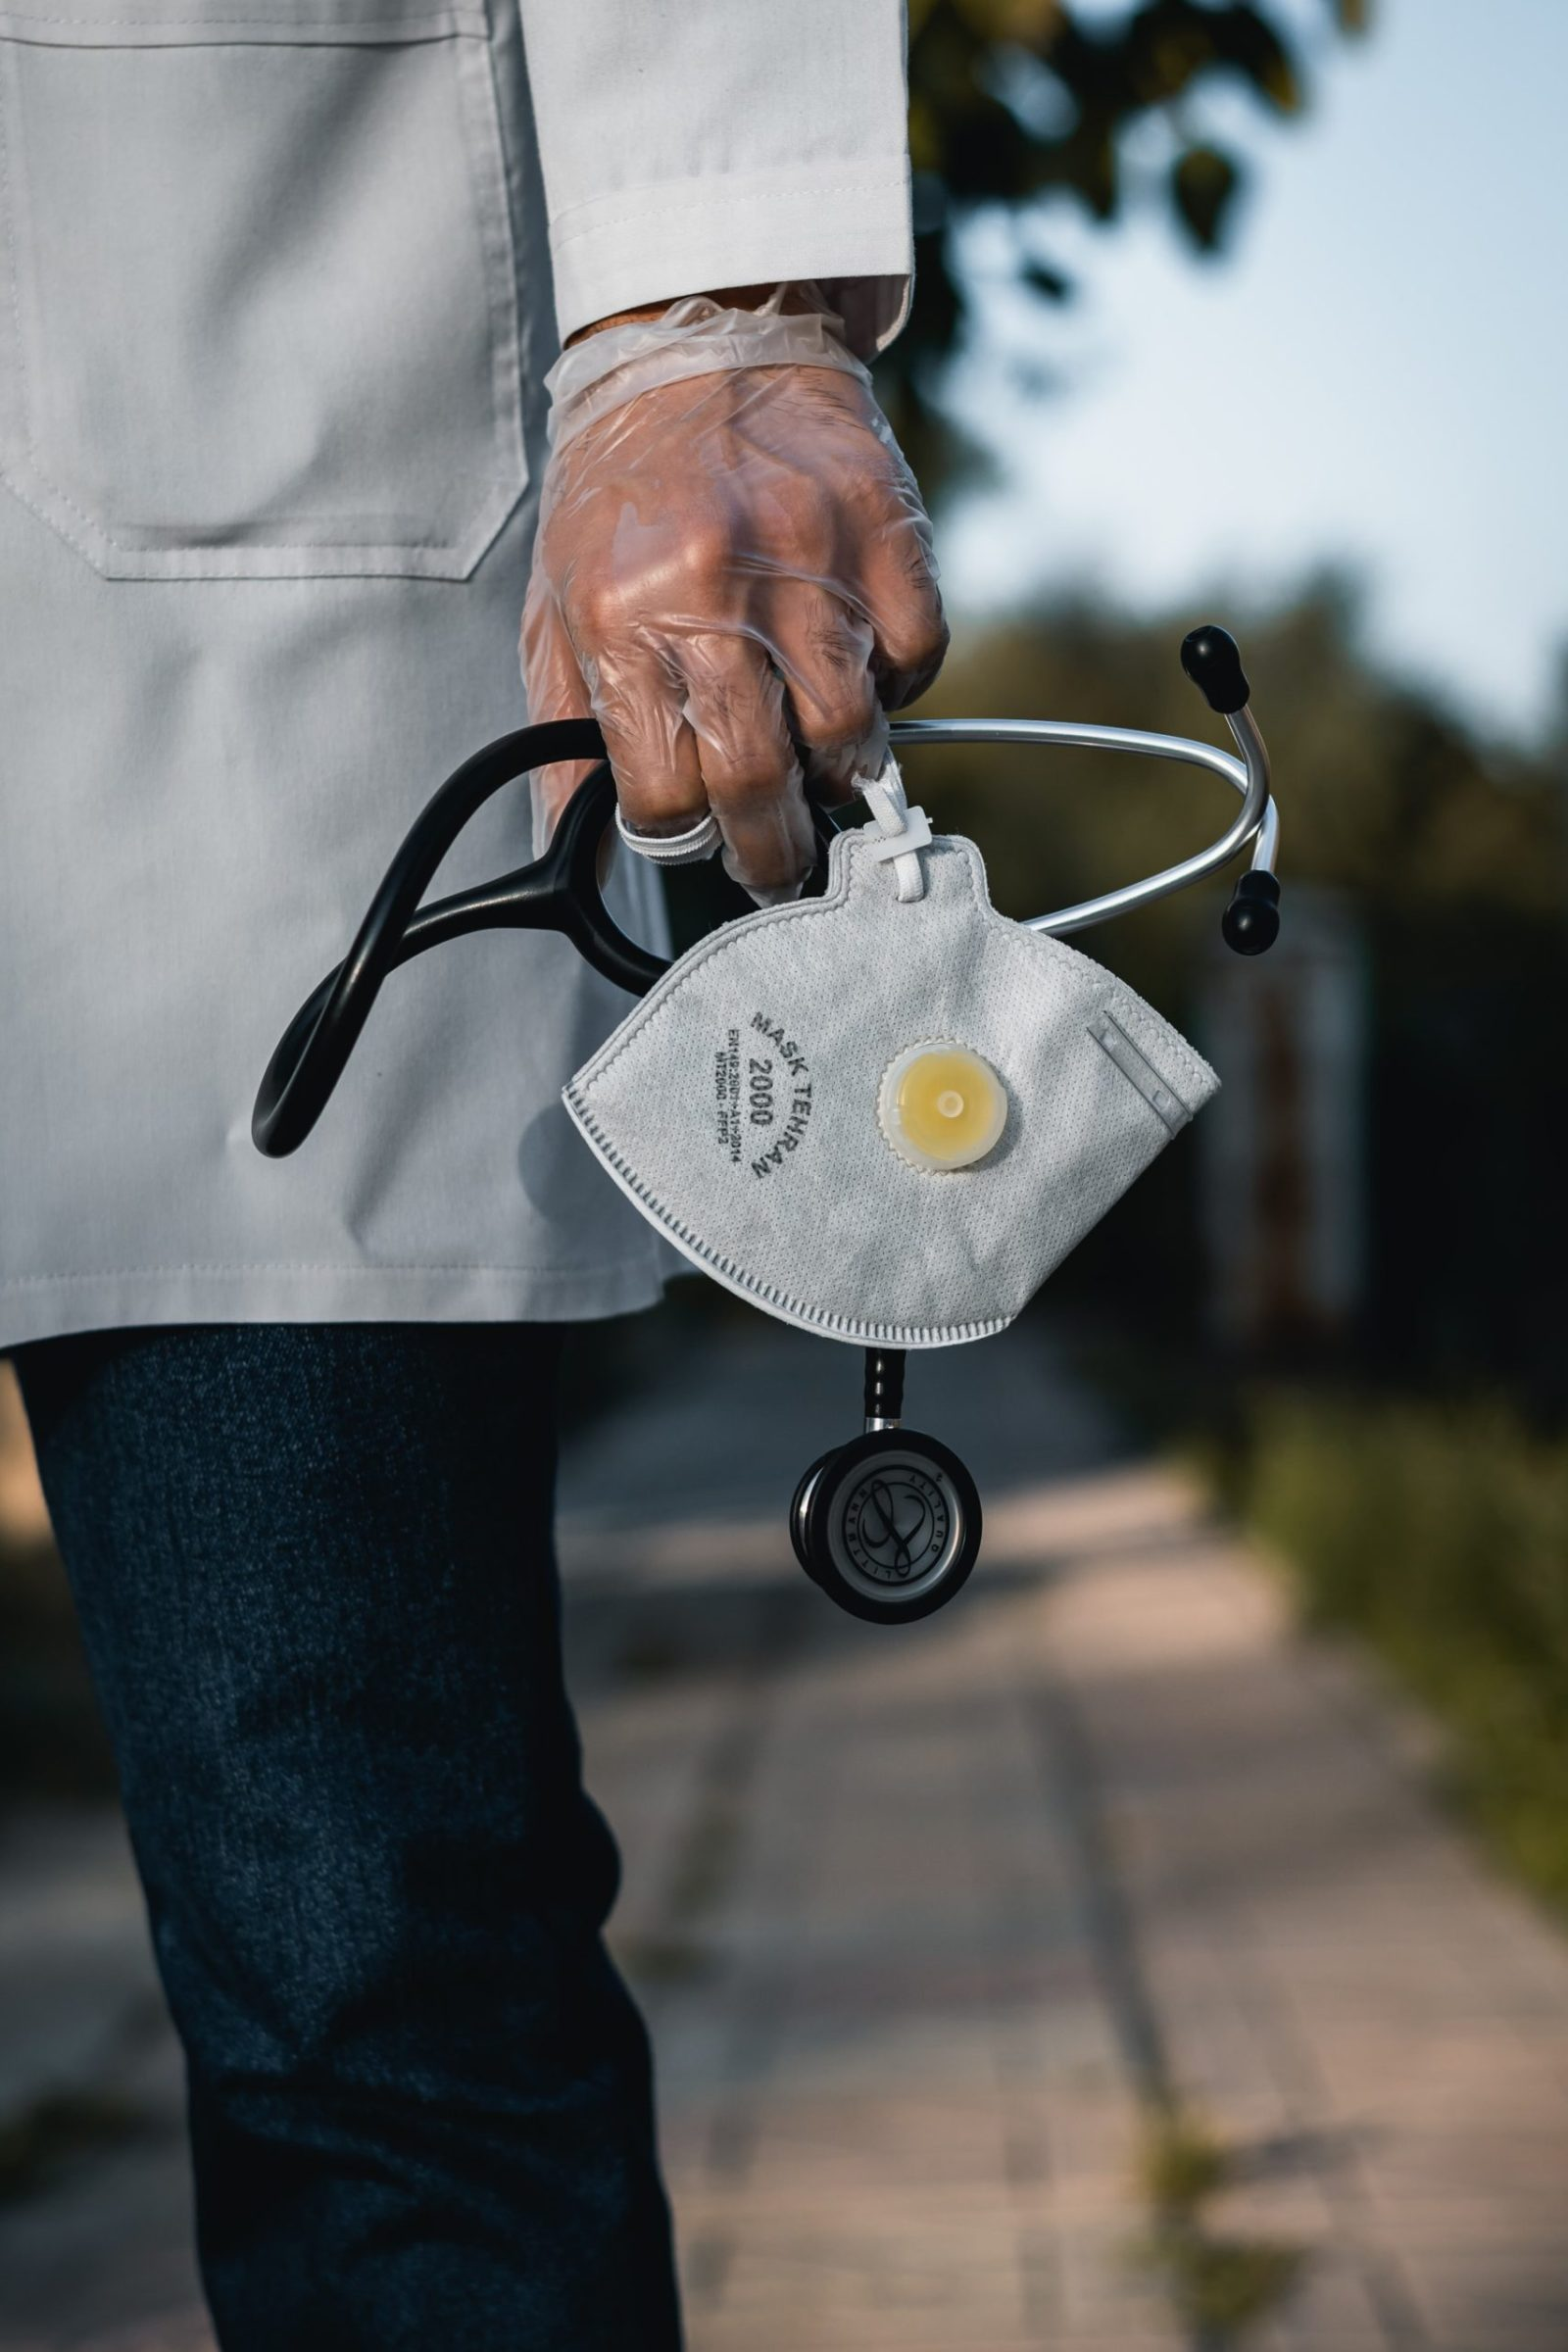 A doctor holding an N95 mask. N95 masks are typically disposable and not meant to be washed or reused. Washing a disposable N95 mask will likely compromise its integrity..